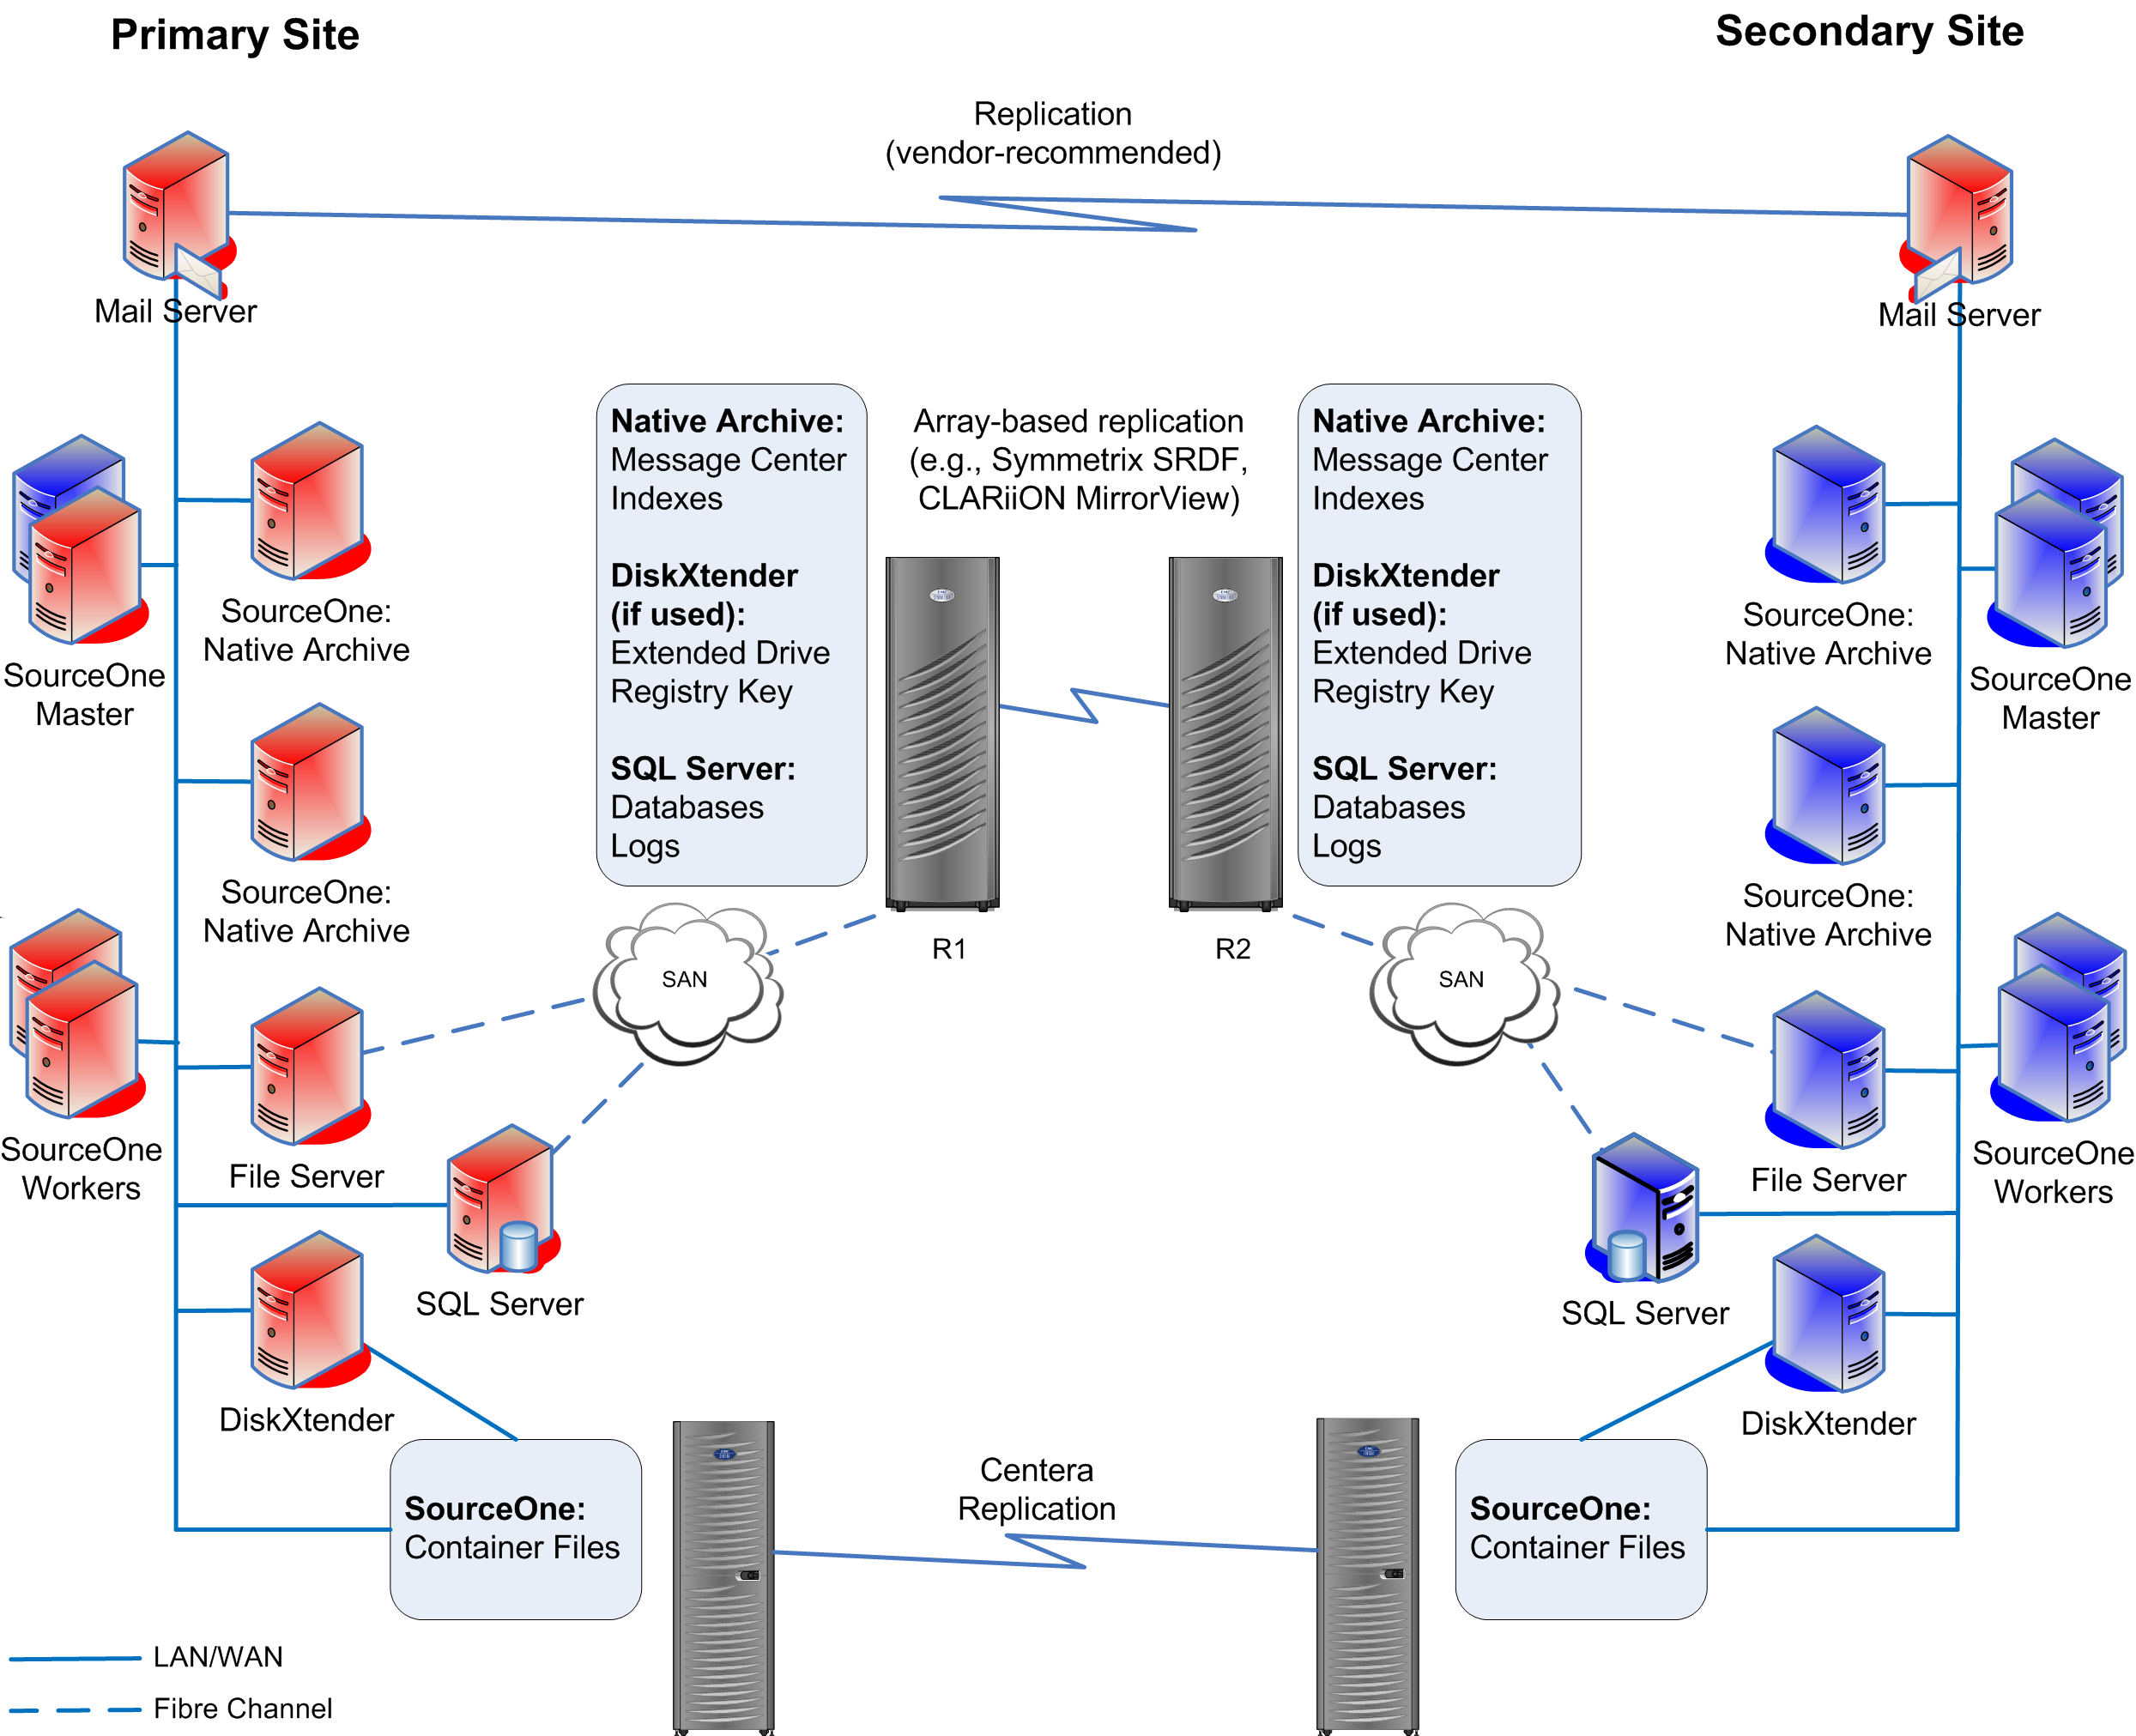 Solution Configuration Details Hot/cold disaster recovery architecture example The following figure depicts an Email Management scenario which uses array-based replication for EMC SourceOne data and